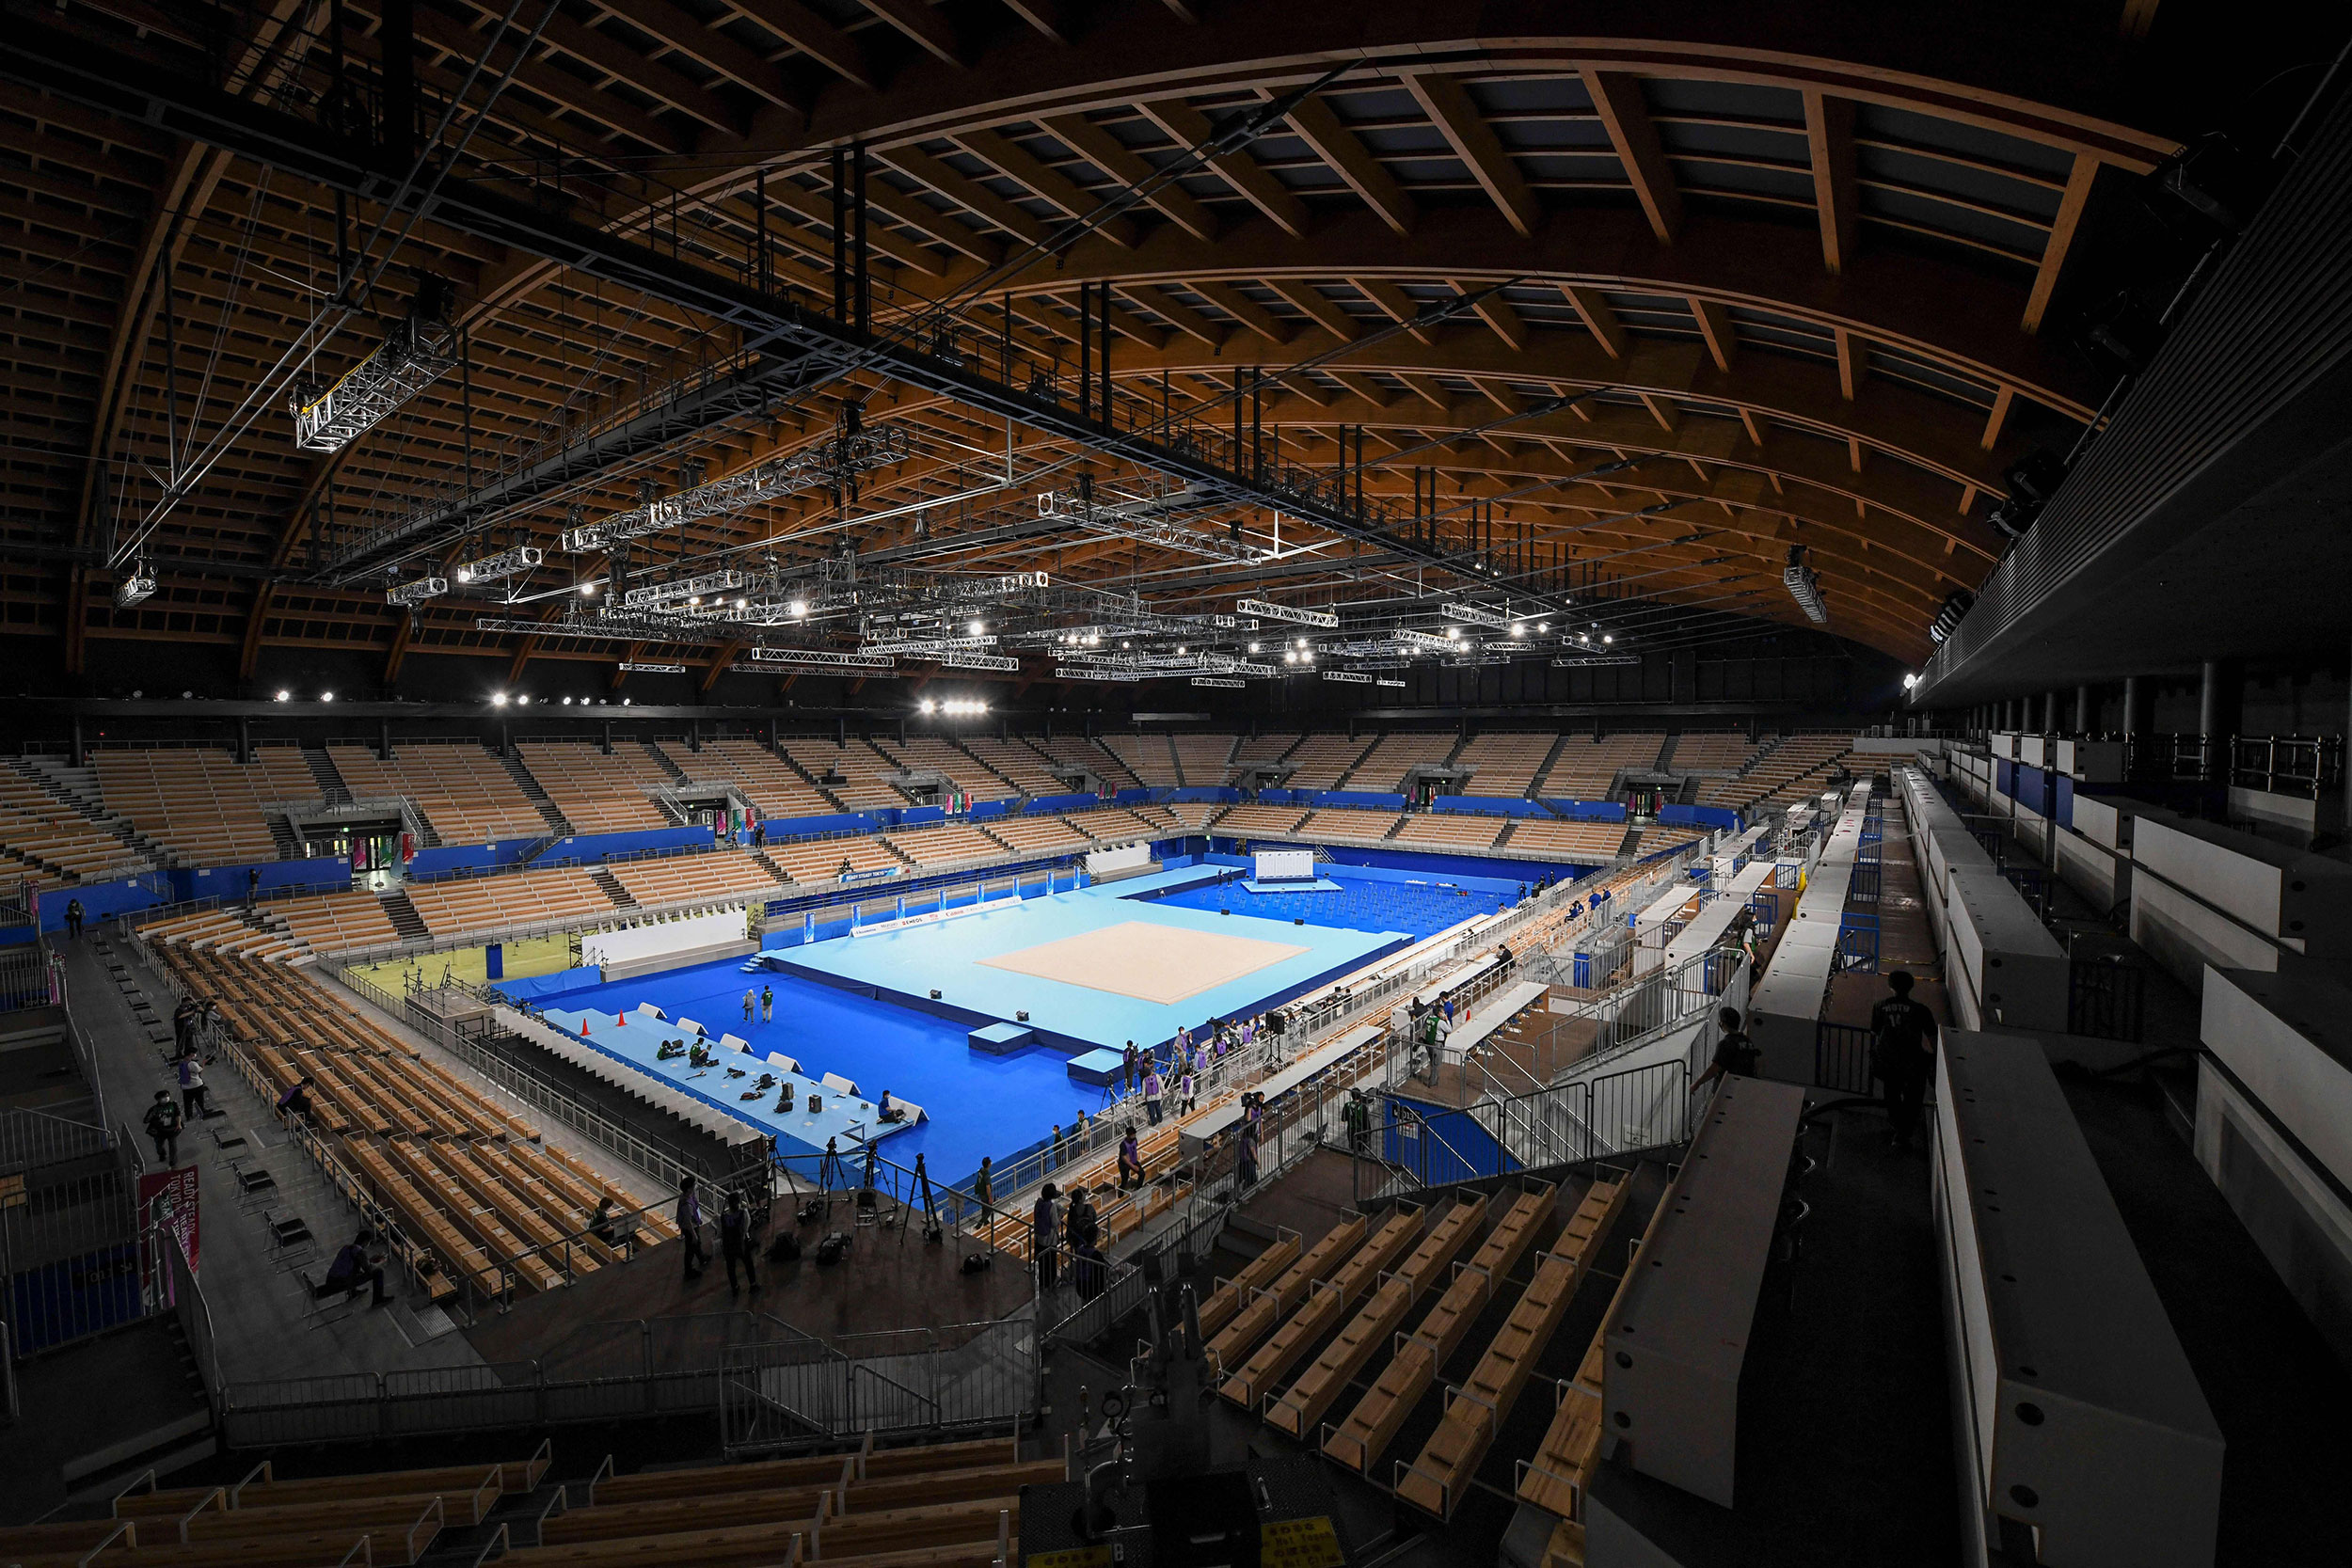 A view of the interior of the Ariake Gymnastics Centre in Tokyo, Japan. The venue will host artistic, rhythmic and trampoline gymnastics.